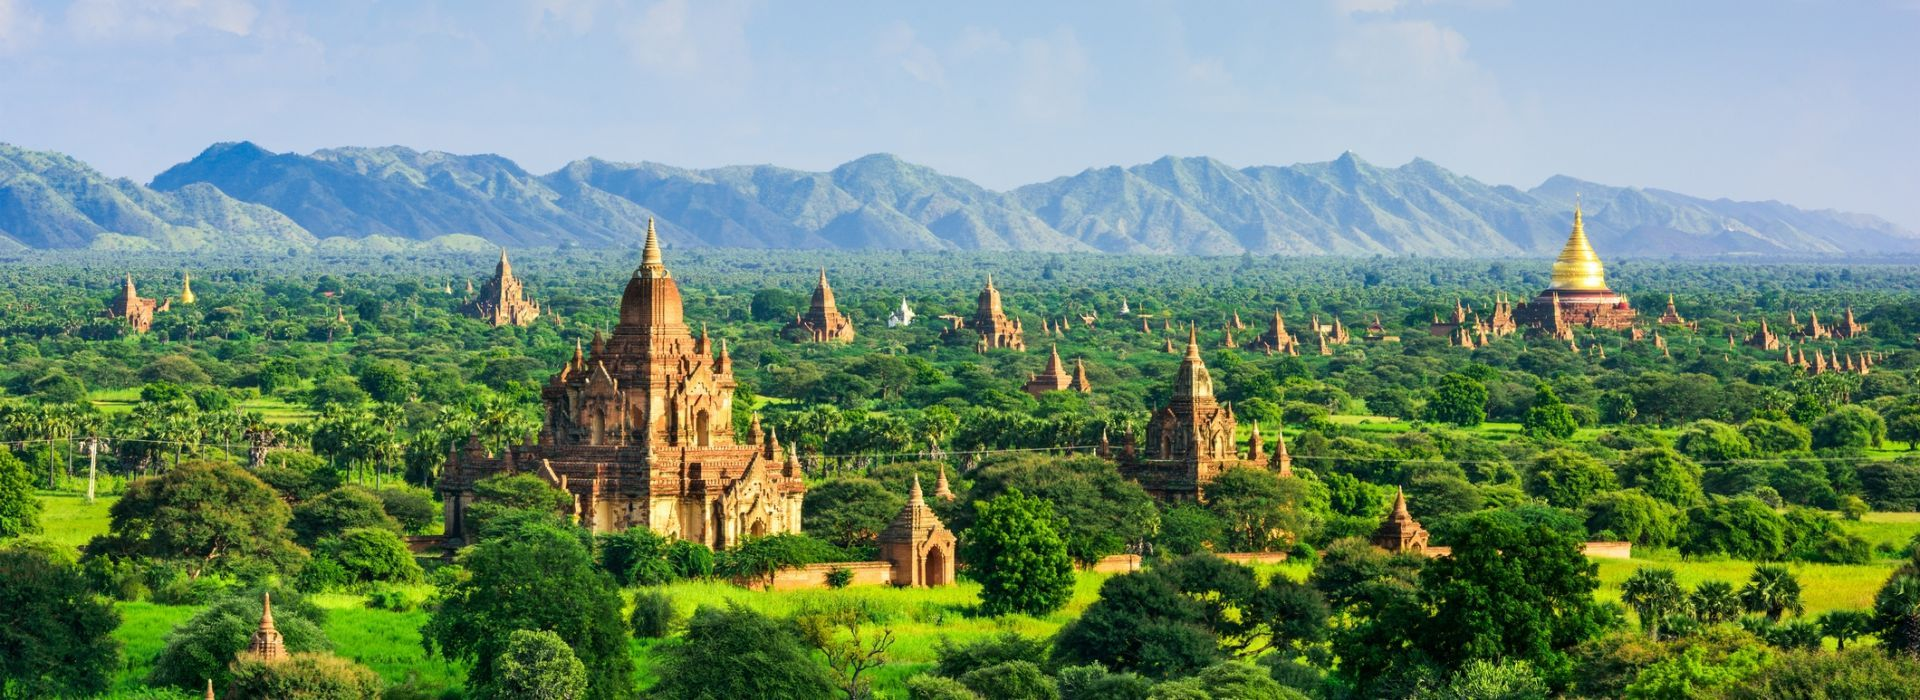 City sightseeing Tours in Myanmar